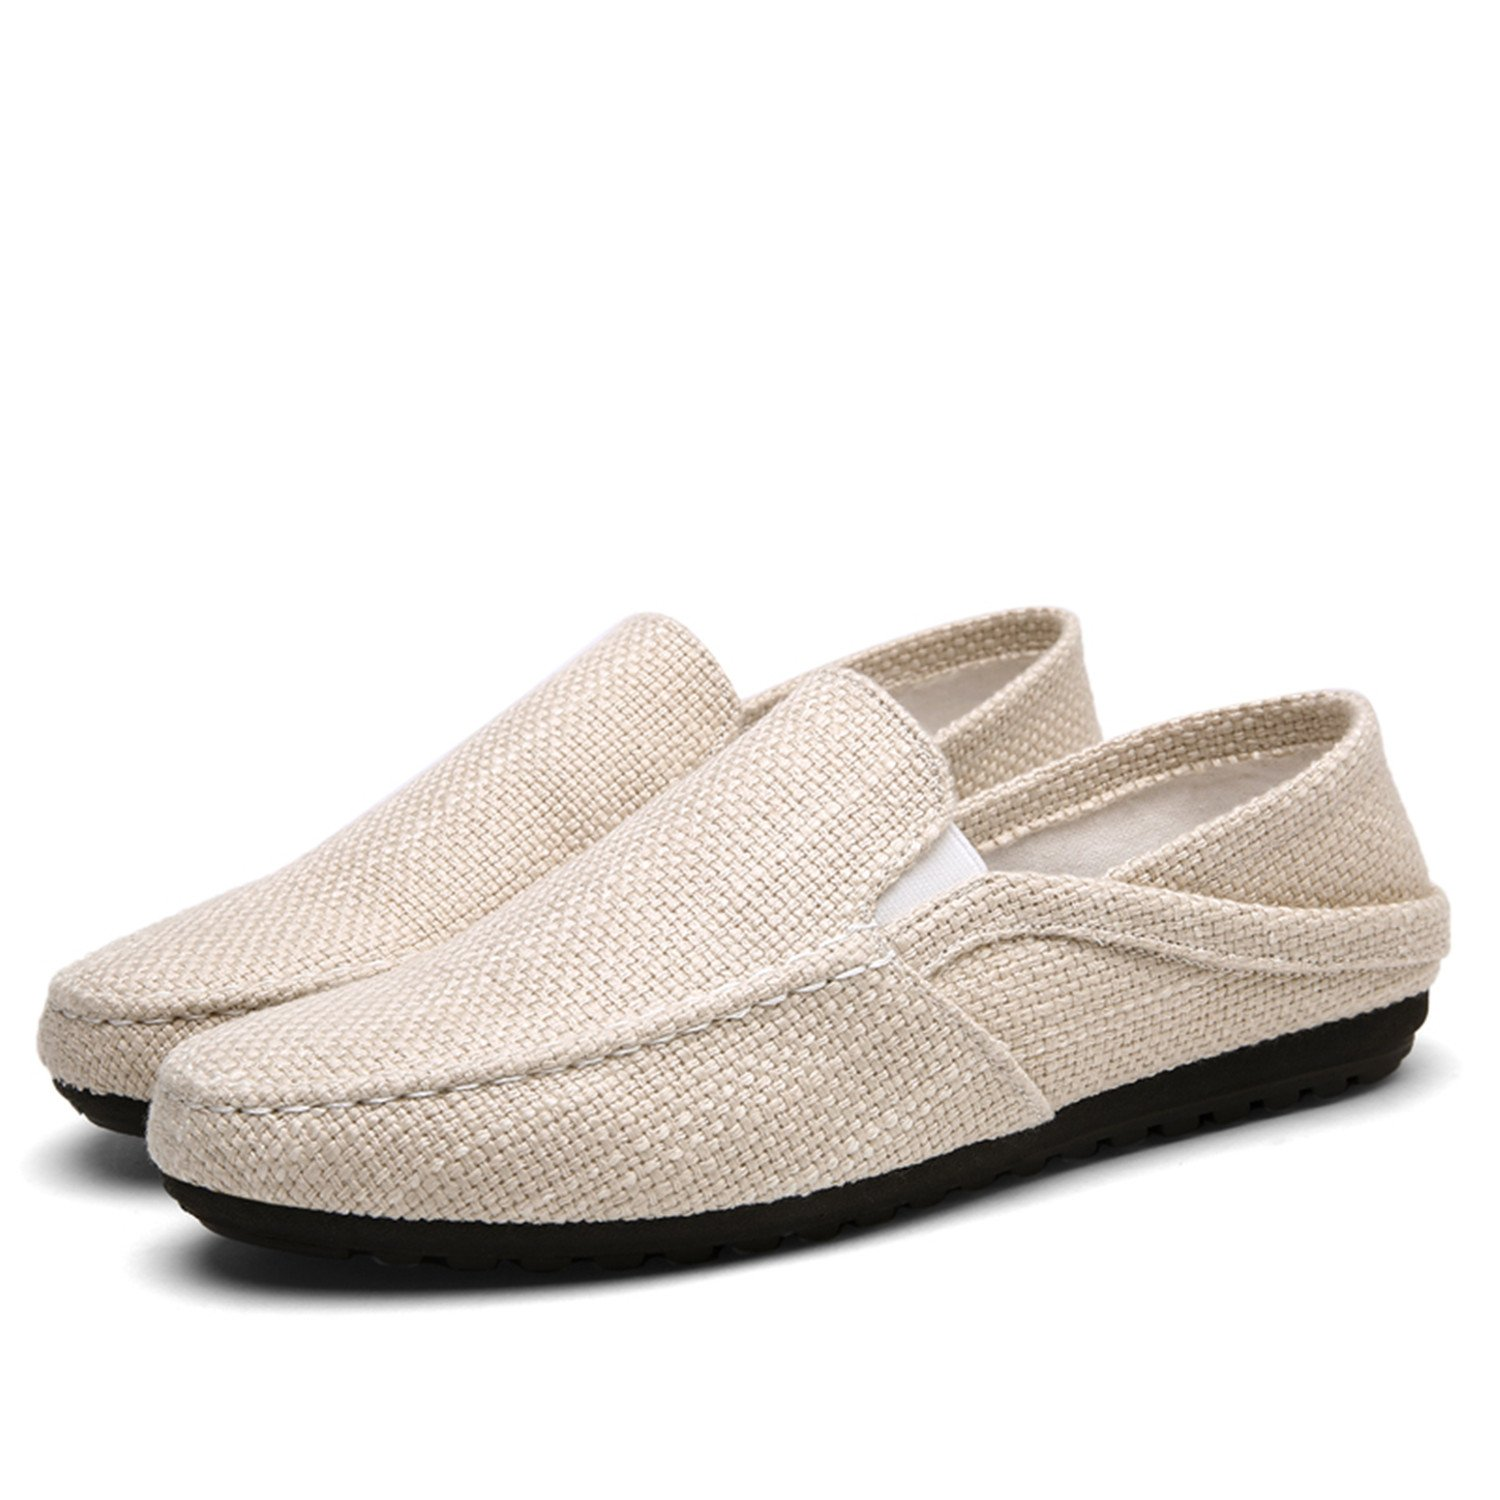 Amazon.com   Sonjer Summer Men Hemp Shoes Breathable Casual Boat Shoes Men Loafers Ultralight Lazy Shoes Beige Flats   Loafers & Slip-Ons